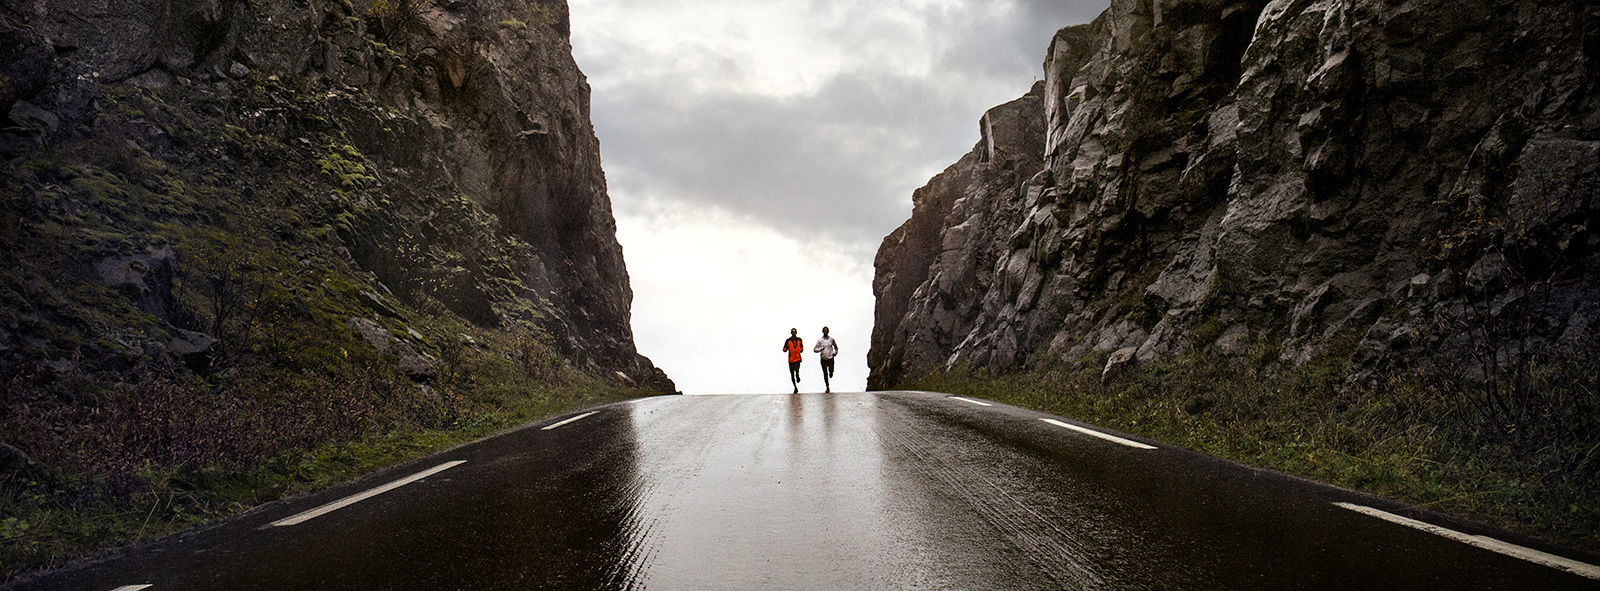 Two runners at the mountain pass